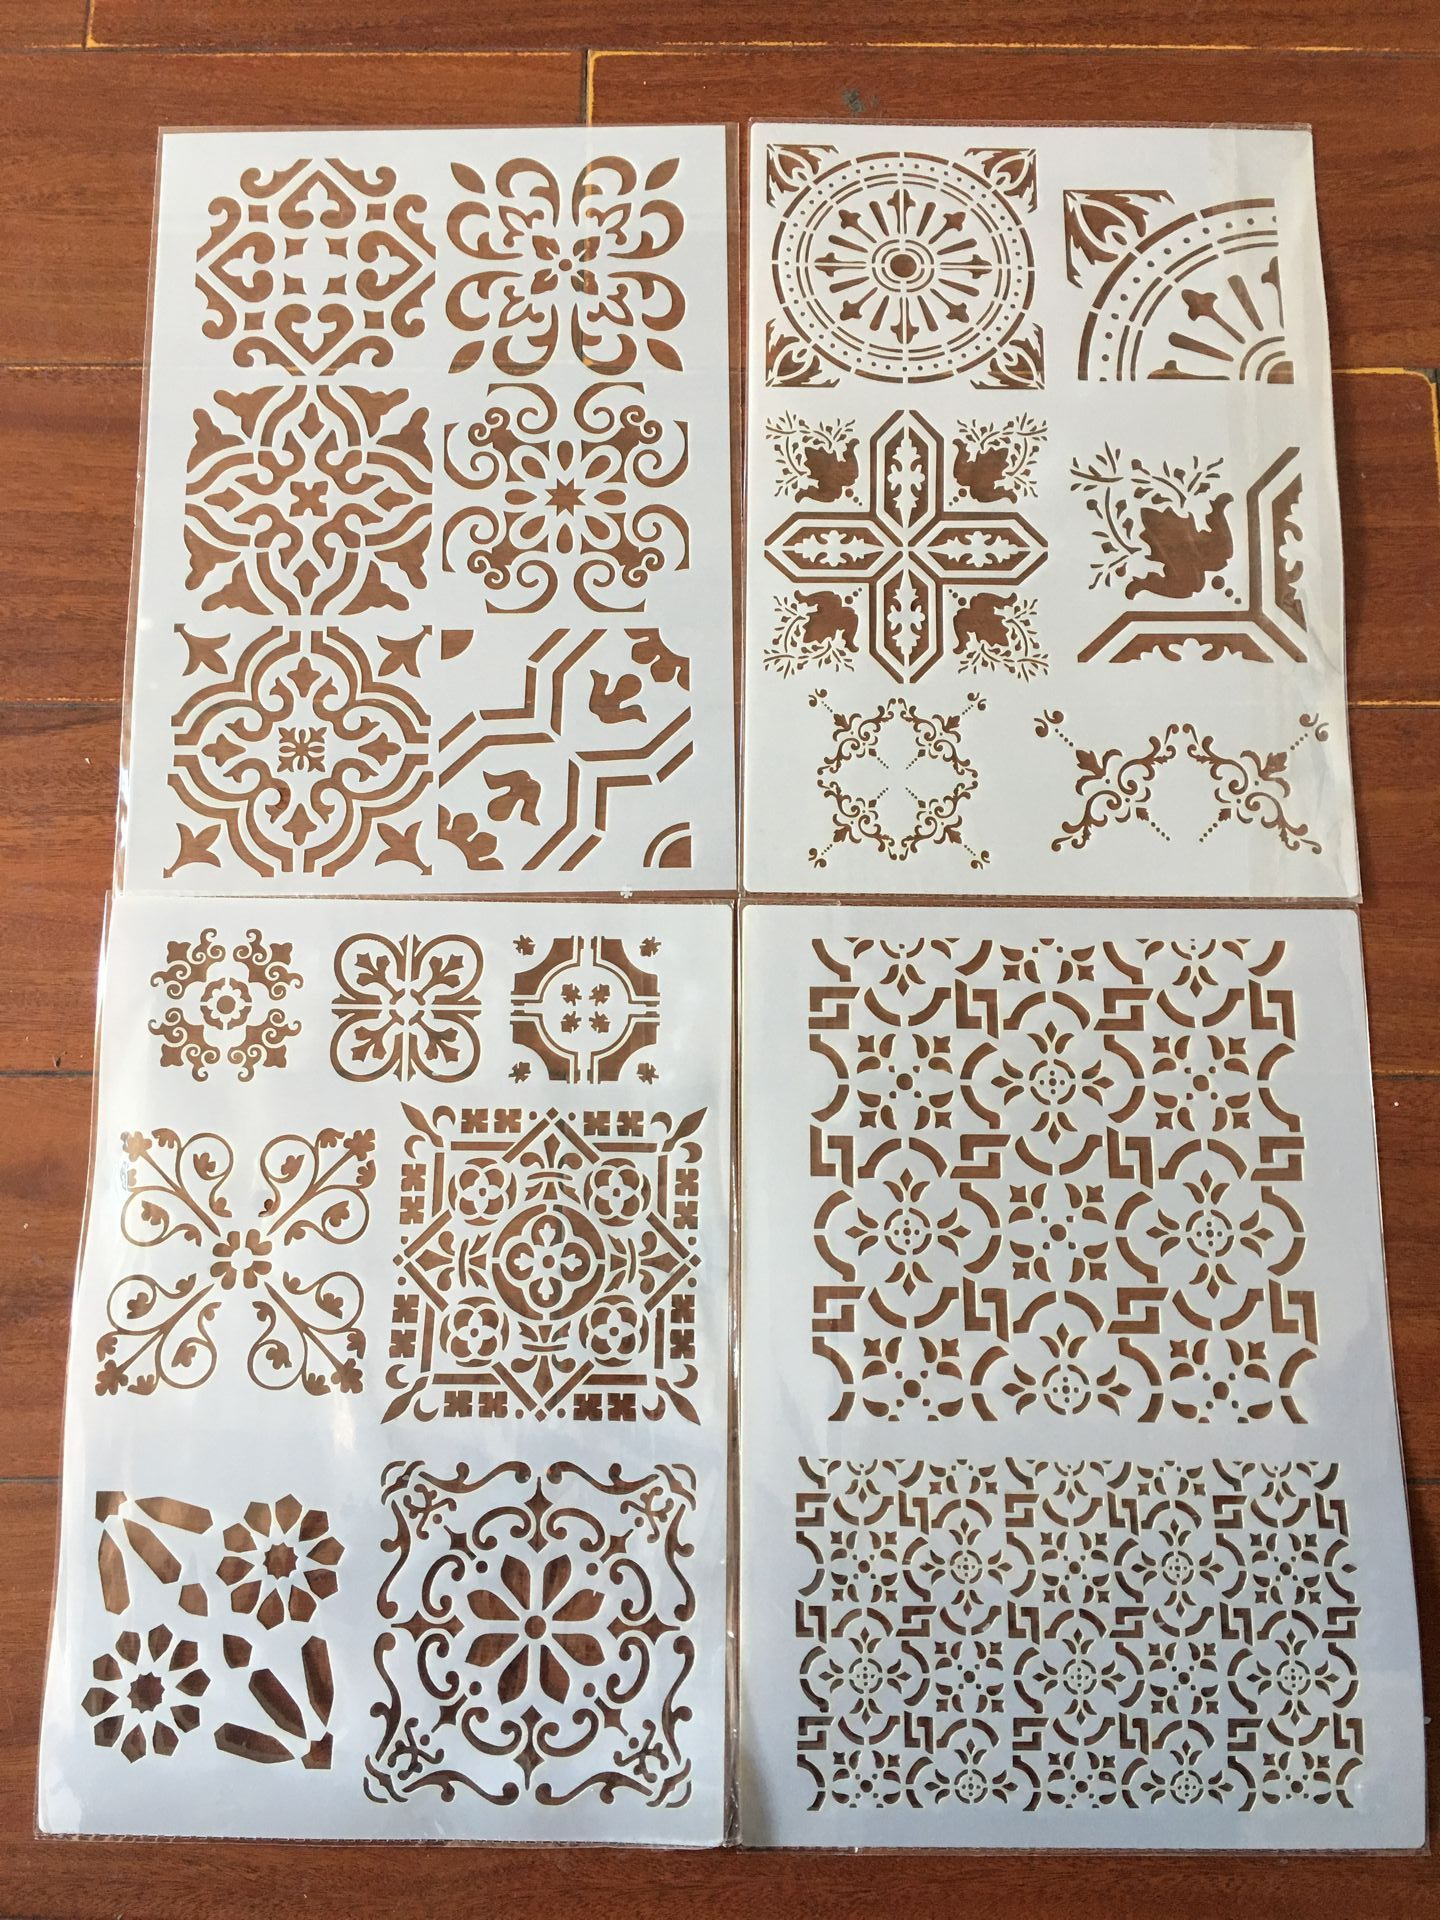 4pcs / Set A4 Window Flower Lace Stencils Painting Coloring Embossing Scrapbook Album Decorative Template